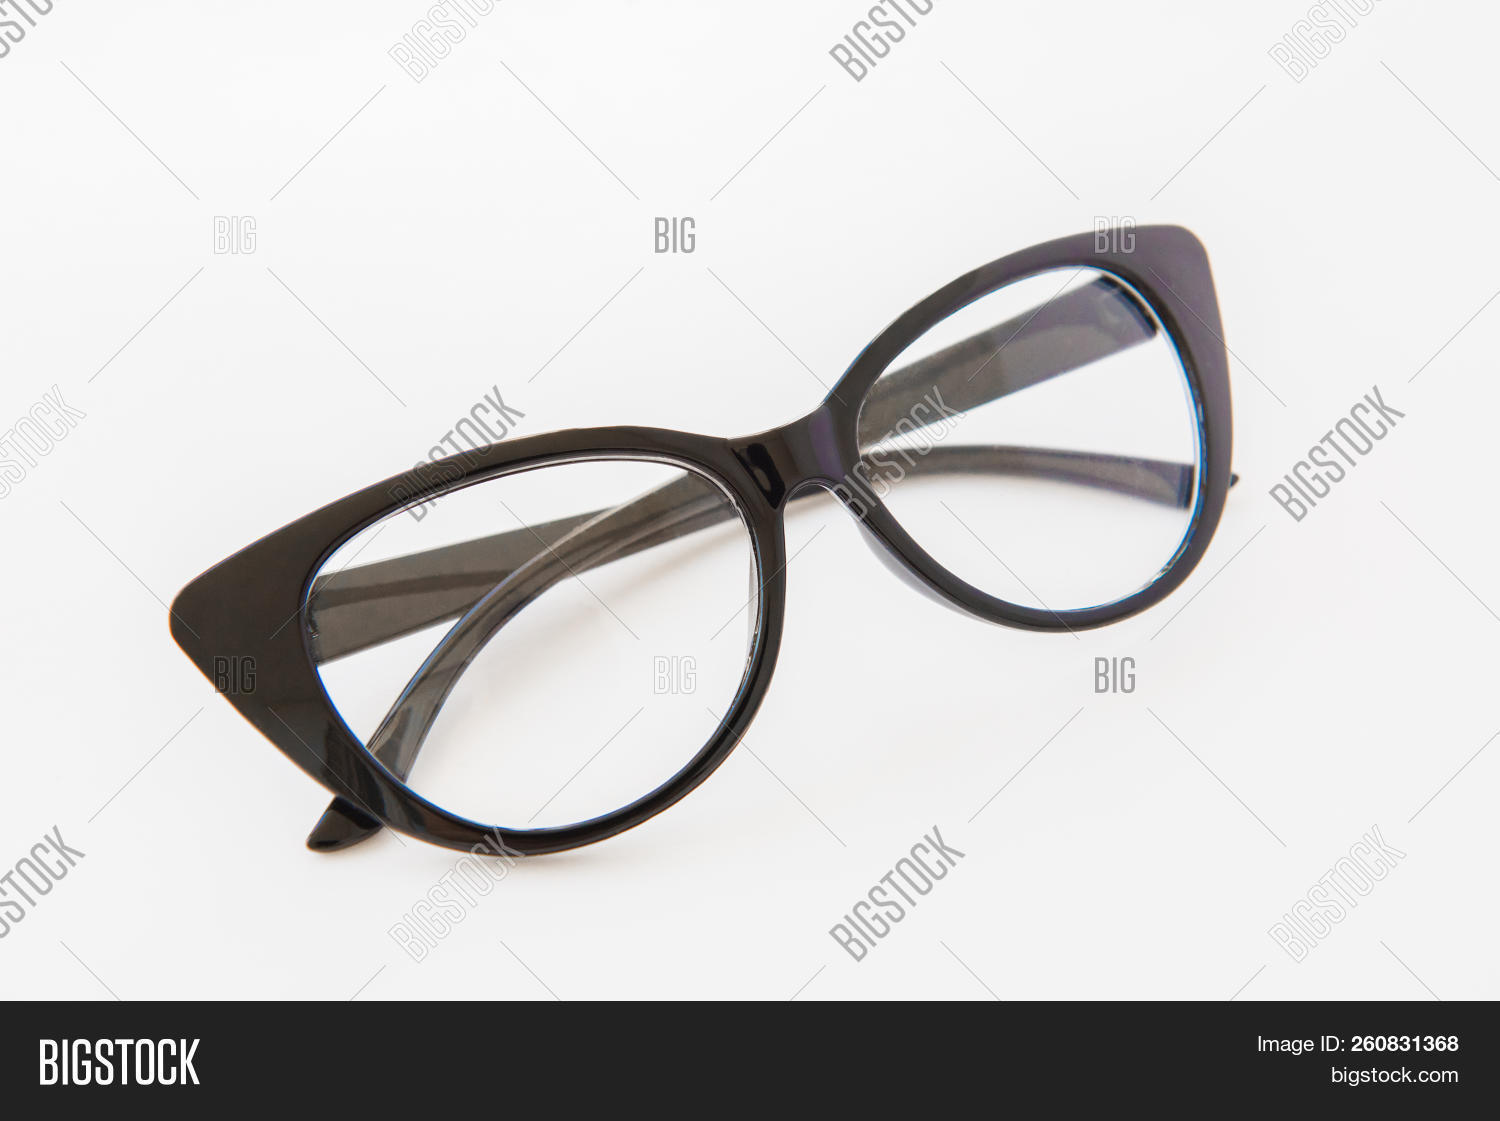 030cfafcbff6 Pair Of Reading Glasses Or Spectacles With Modern Dark Frames Folded Up On  A White Background